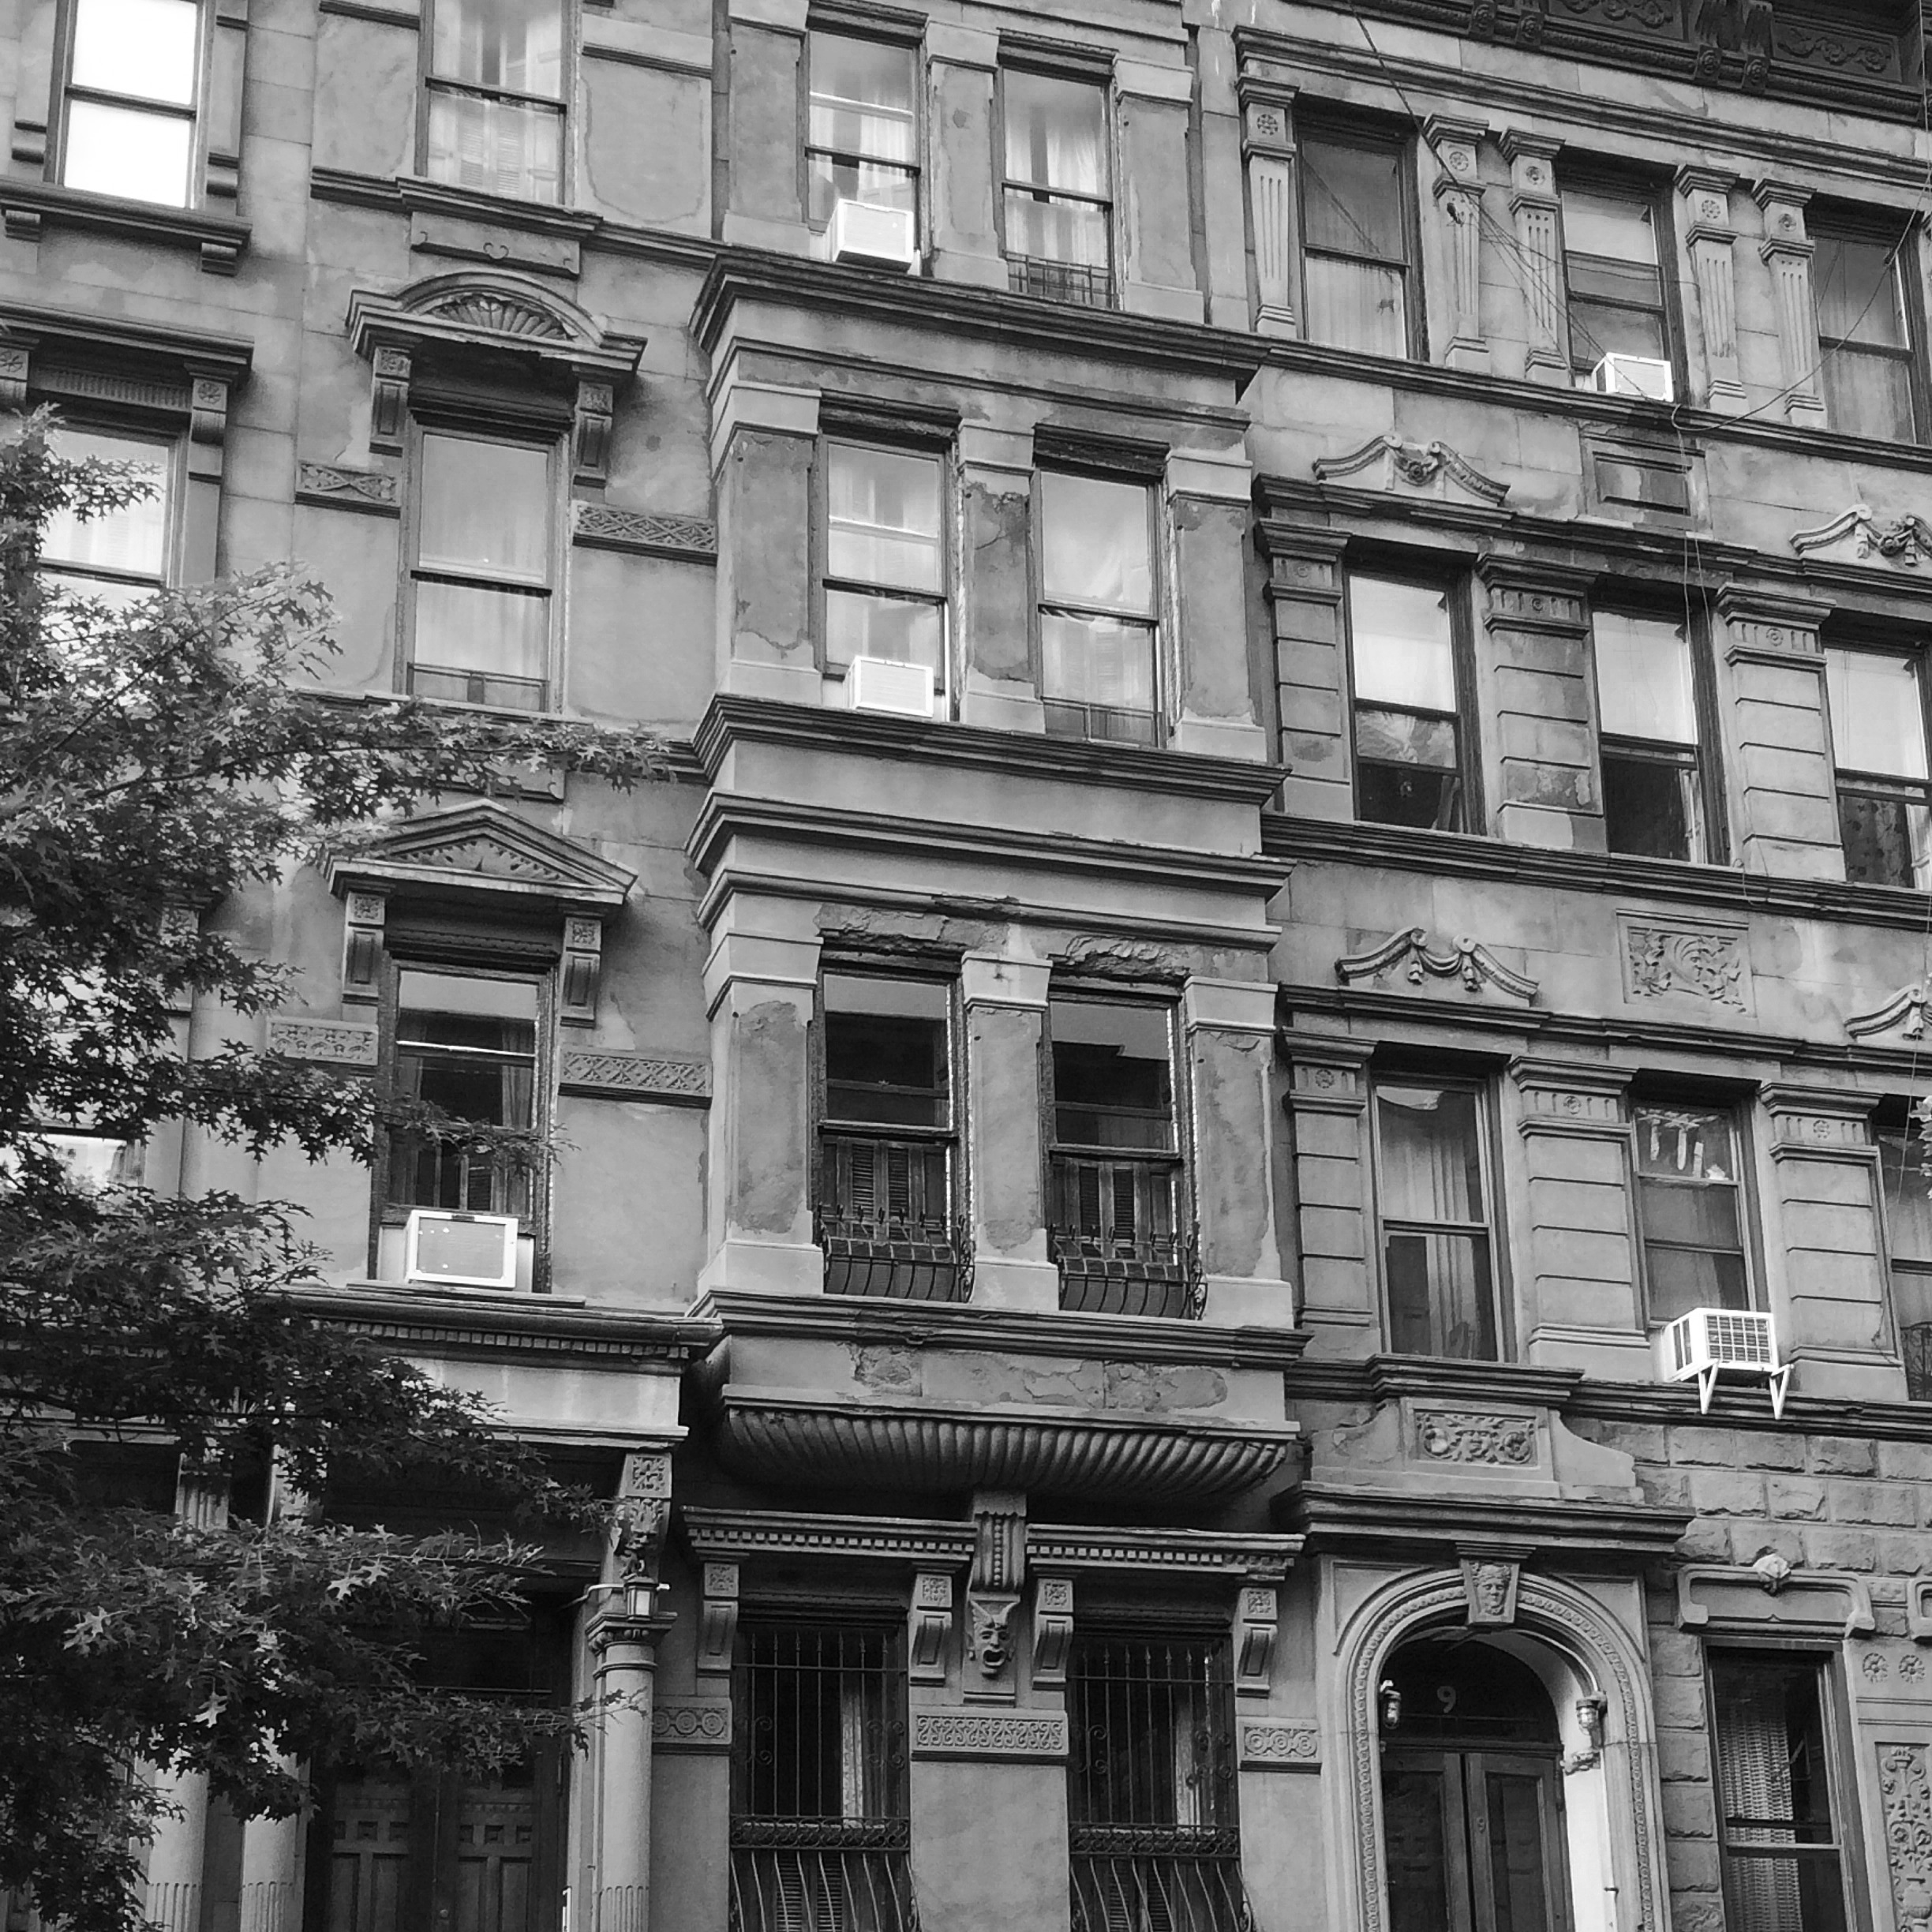 Nyc Apartment Building: Black And White New York